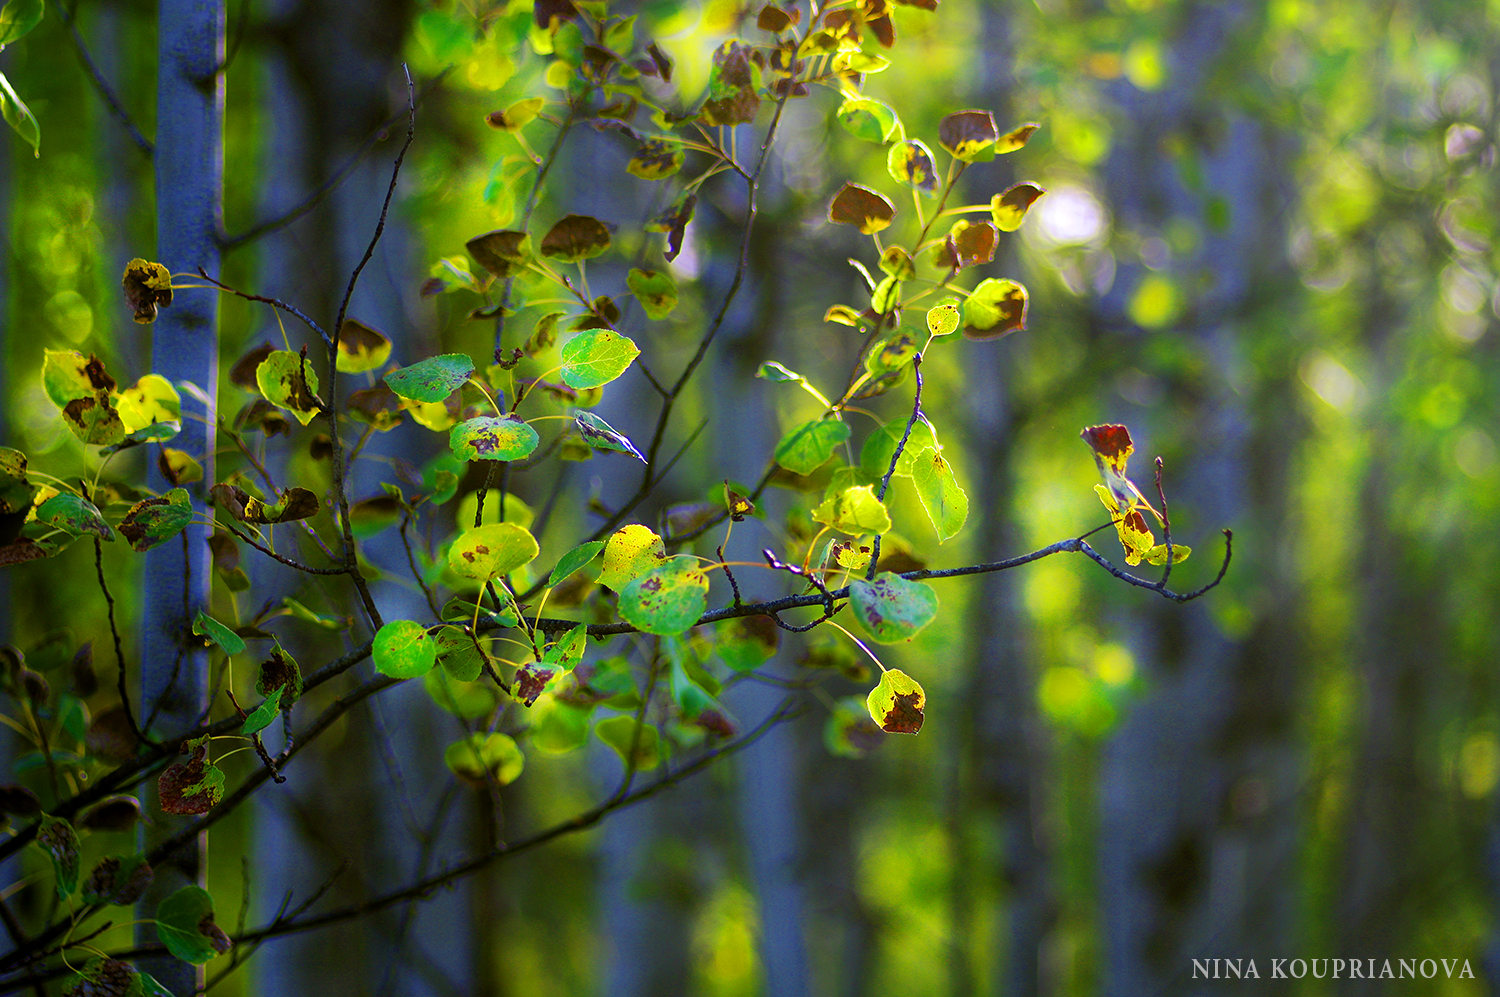 aspen golden hour august 2016 1500 px.jpg